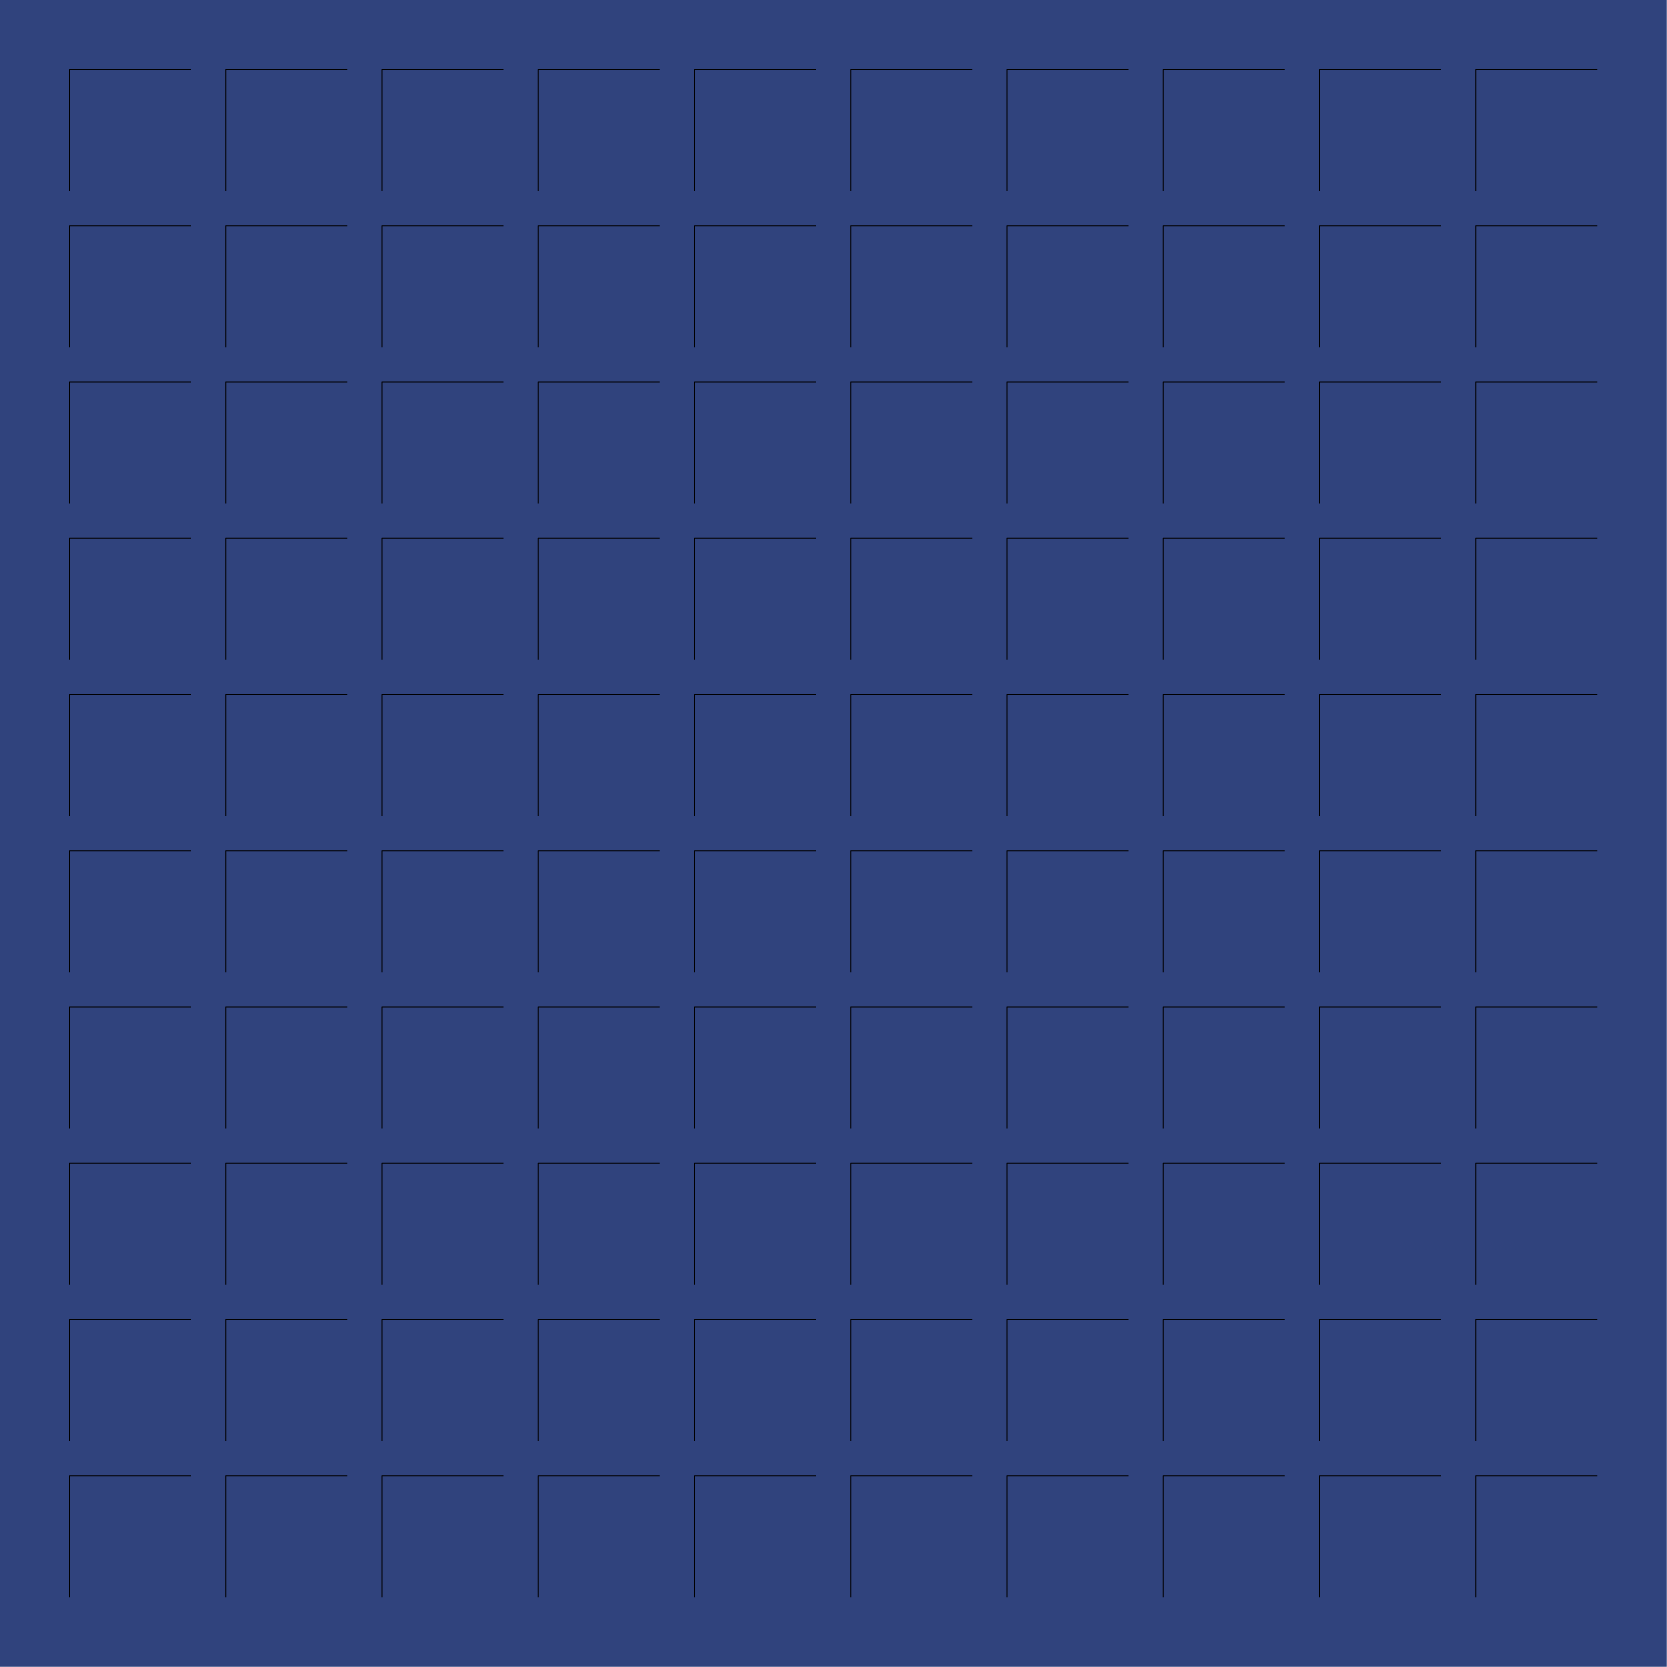 12X12 PRUSSIAN BLUE GRID PAPER - 6 sheets